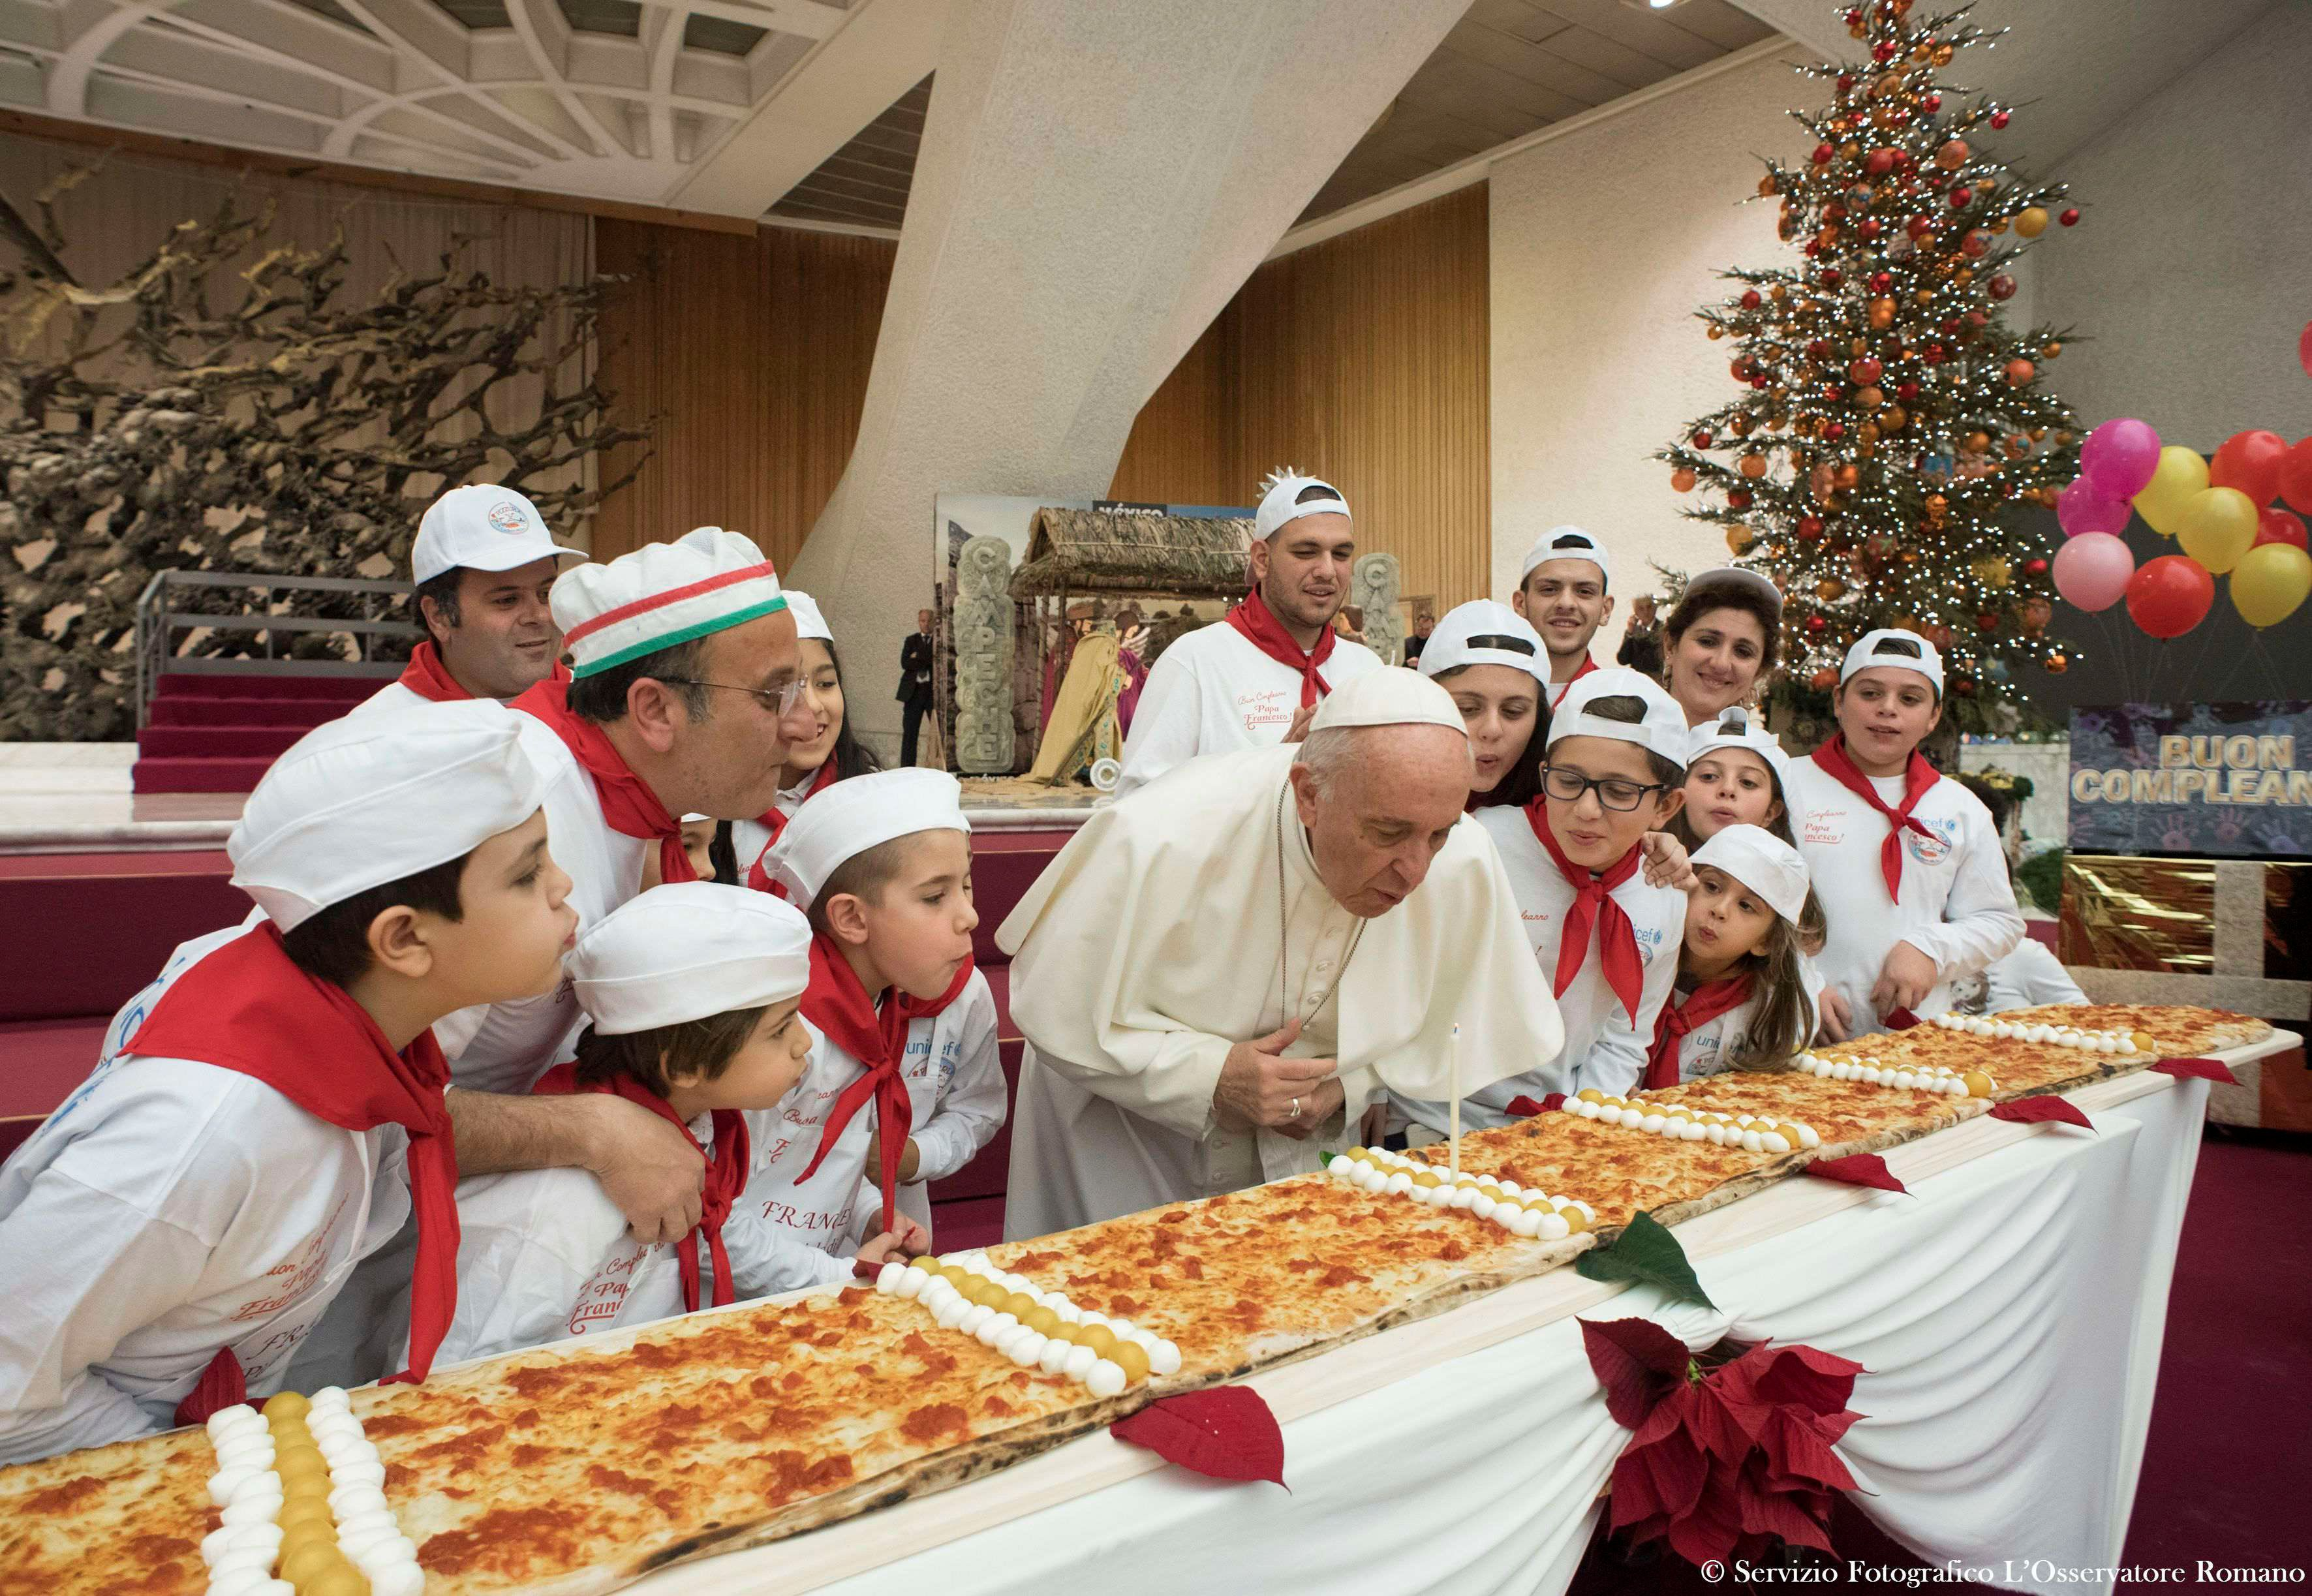 Pope Francis blows on a candleto celebrate his birthday during a special meeting at Paul VI hall at the Vatican on Dec.